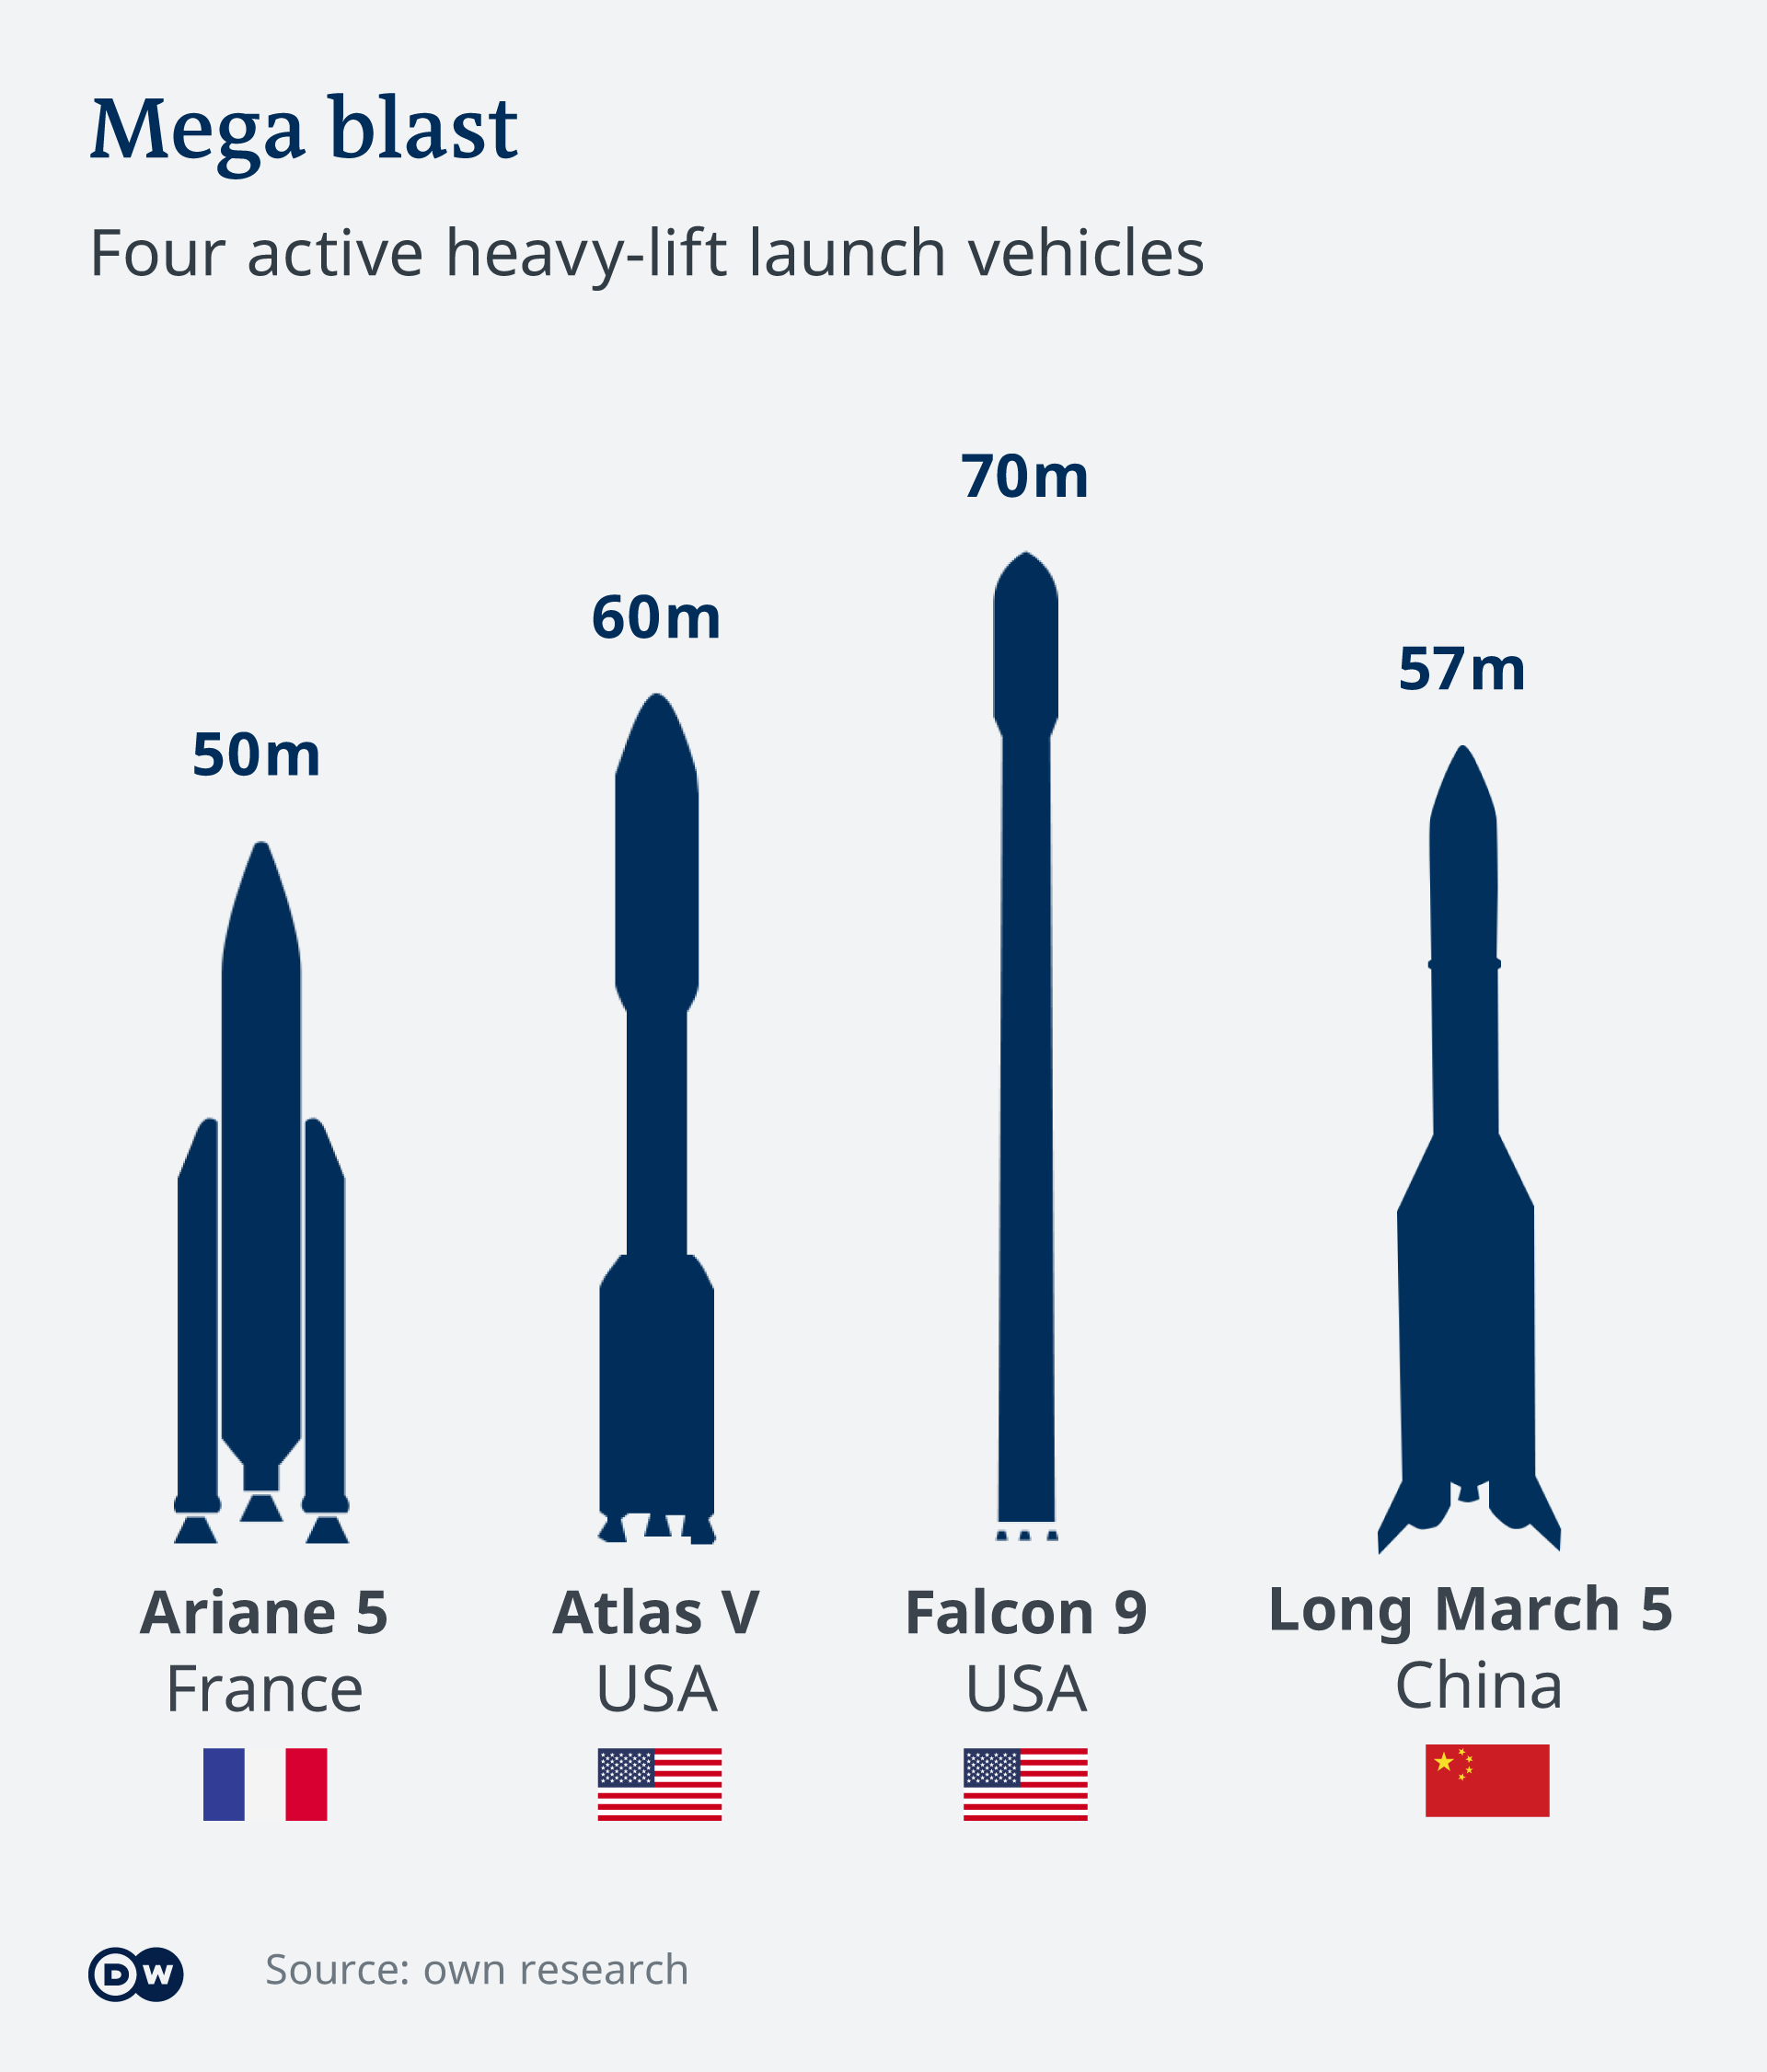 Infographic illustrating 4 active heavy lift rockets, also known as launch vehicles